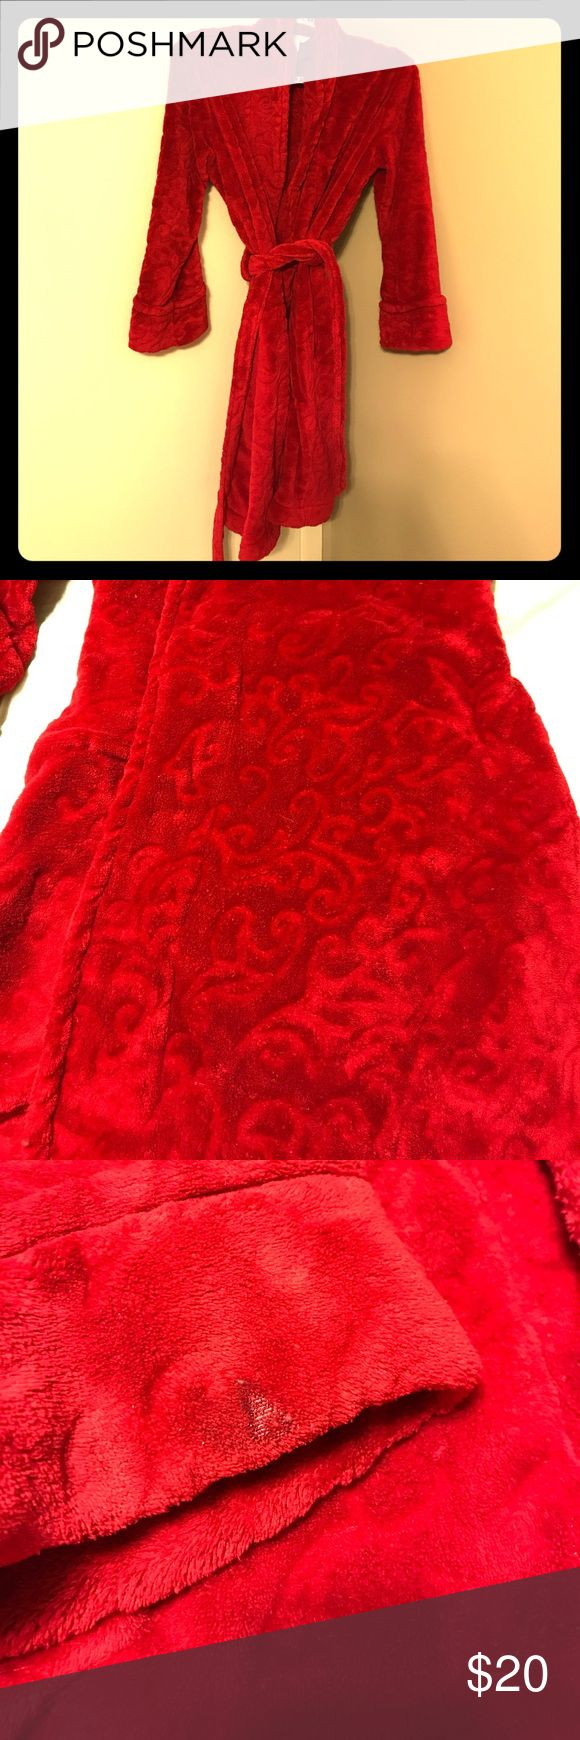 Red robe Very fluffy and soft red robe with swirling detail. Has one tiny burn mark on the right sleeve the size of a nickel. Otherwise in great shape! Charter Club Intimates & Sleepwear Robes